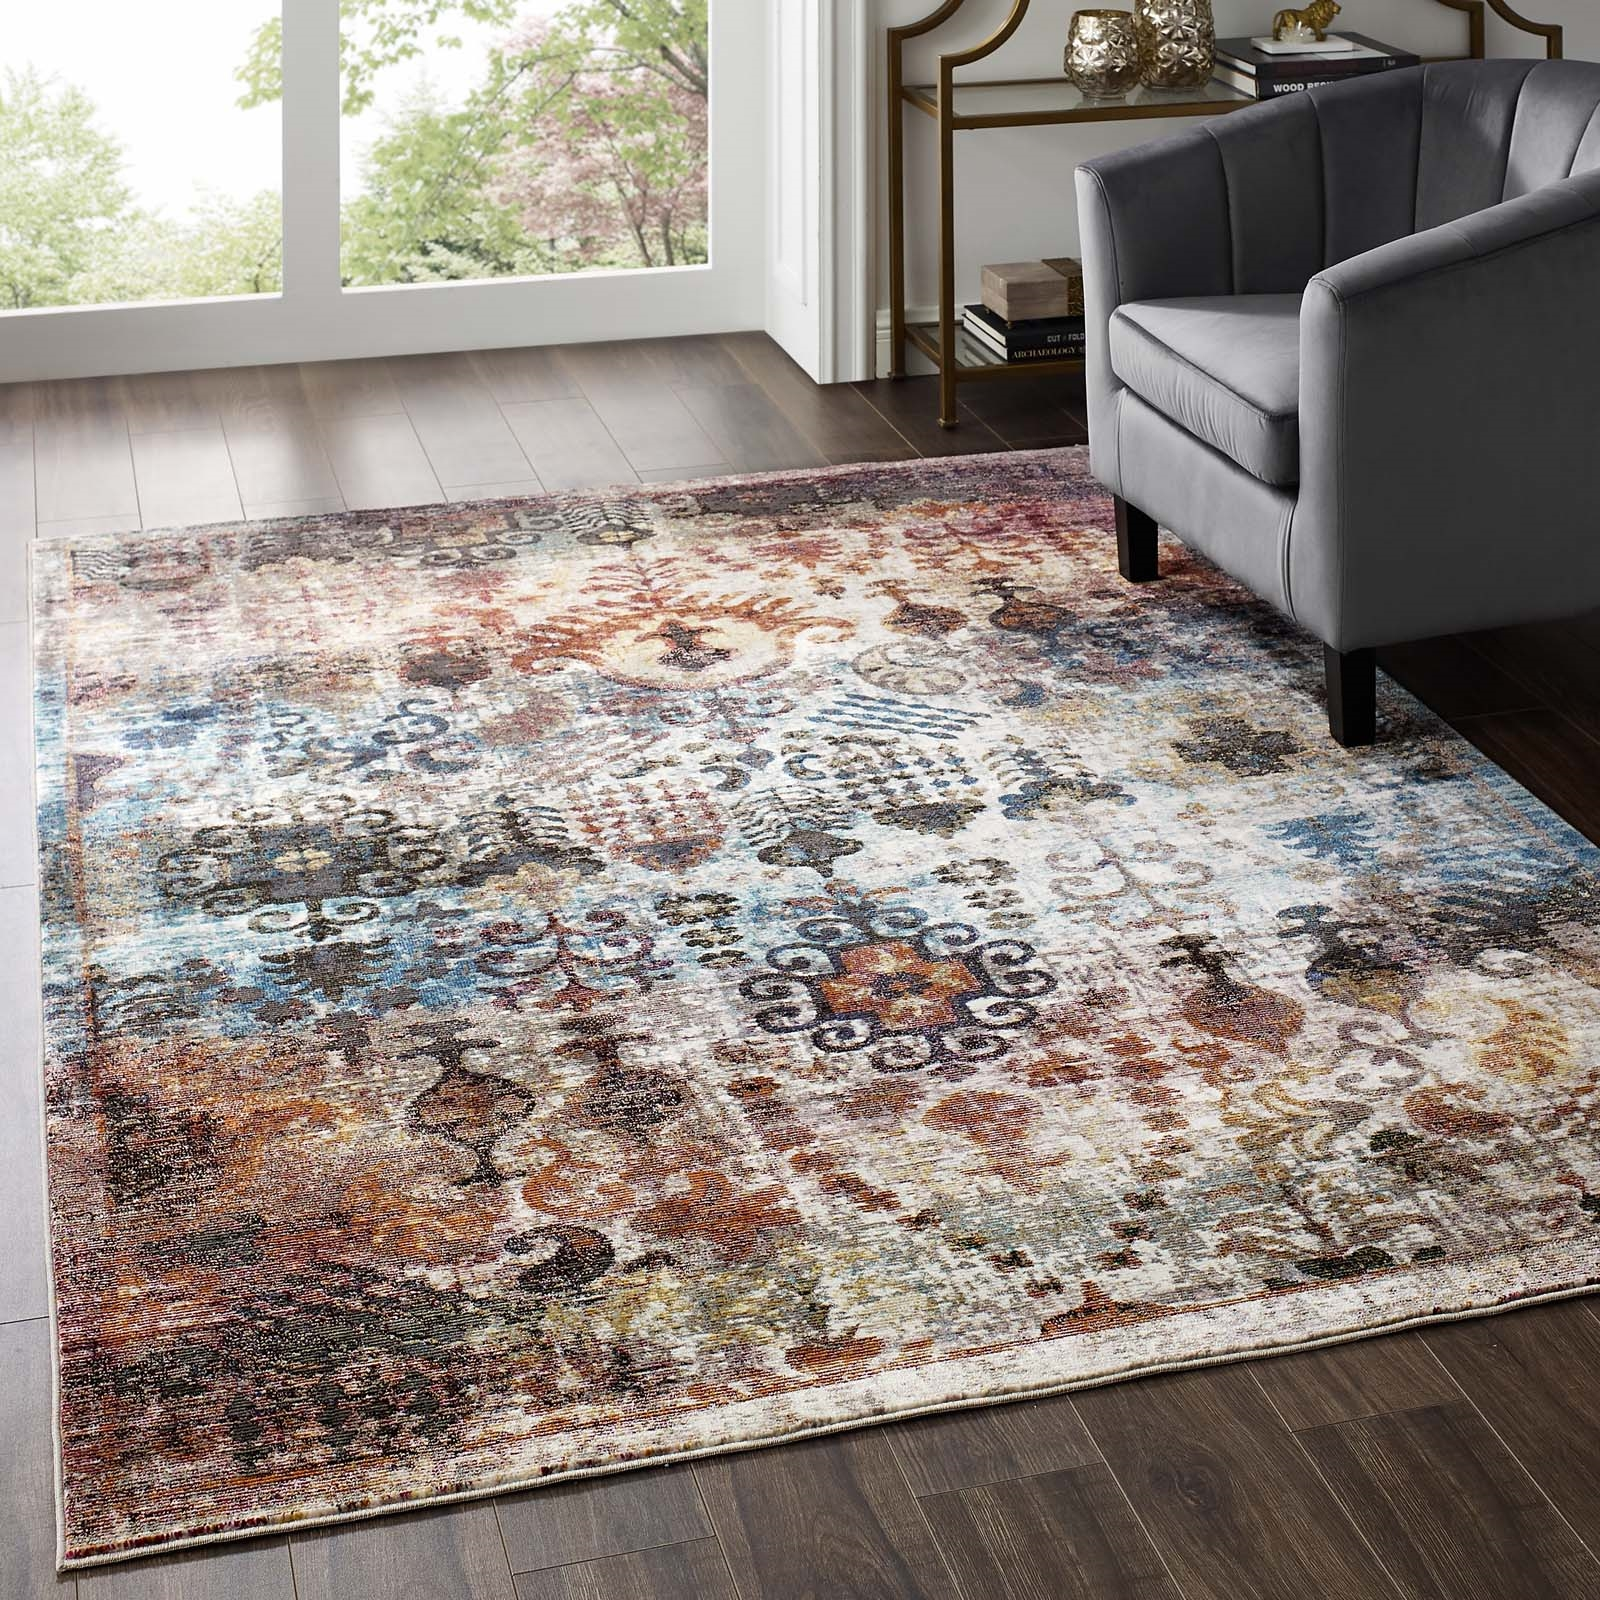 Success Tahira Transitional Distressed Vintage Floral Moroccan Trellis 5x8 Area Rug in Multicolored